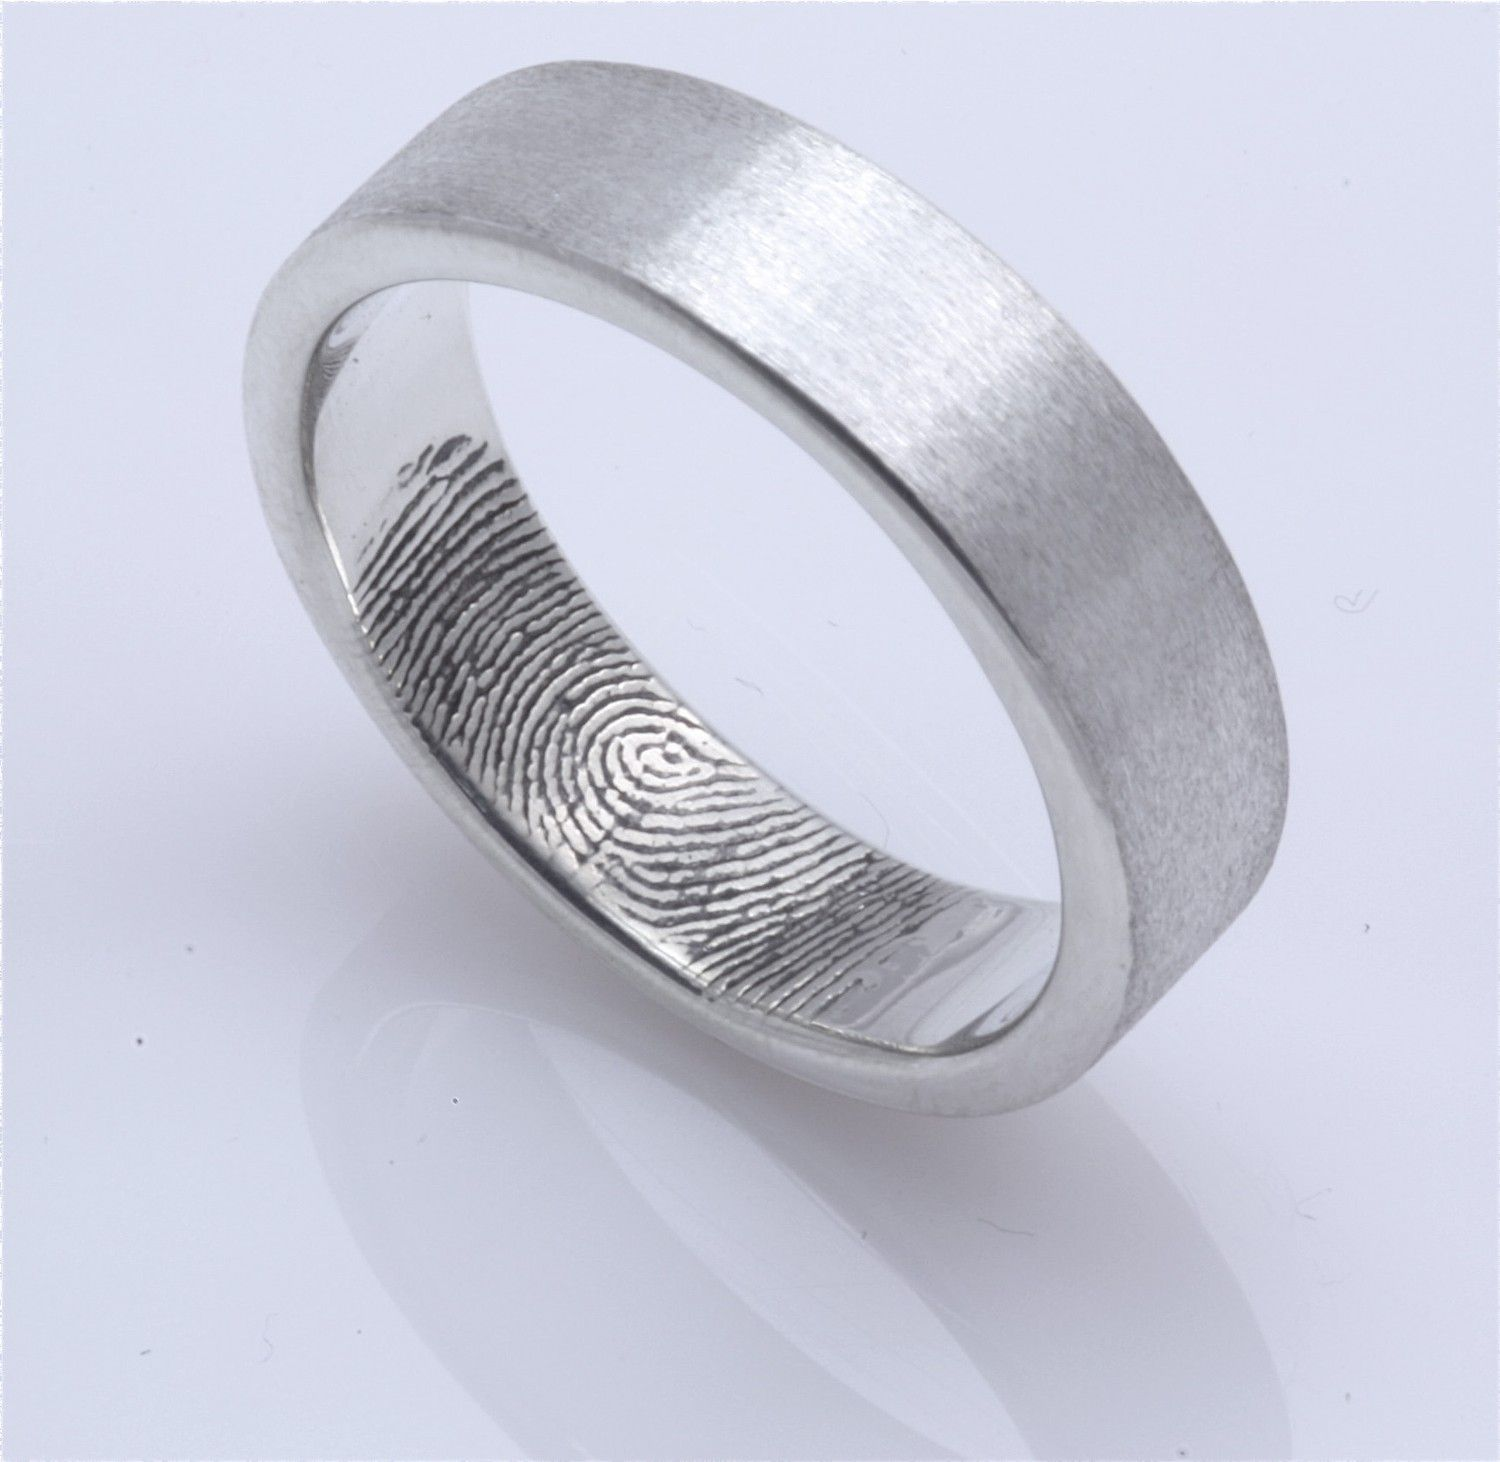 ring rings steel world changed wedding couple has unique bands us pin new the finger promise print stainless